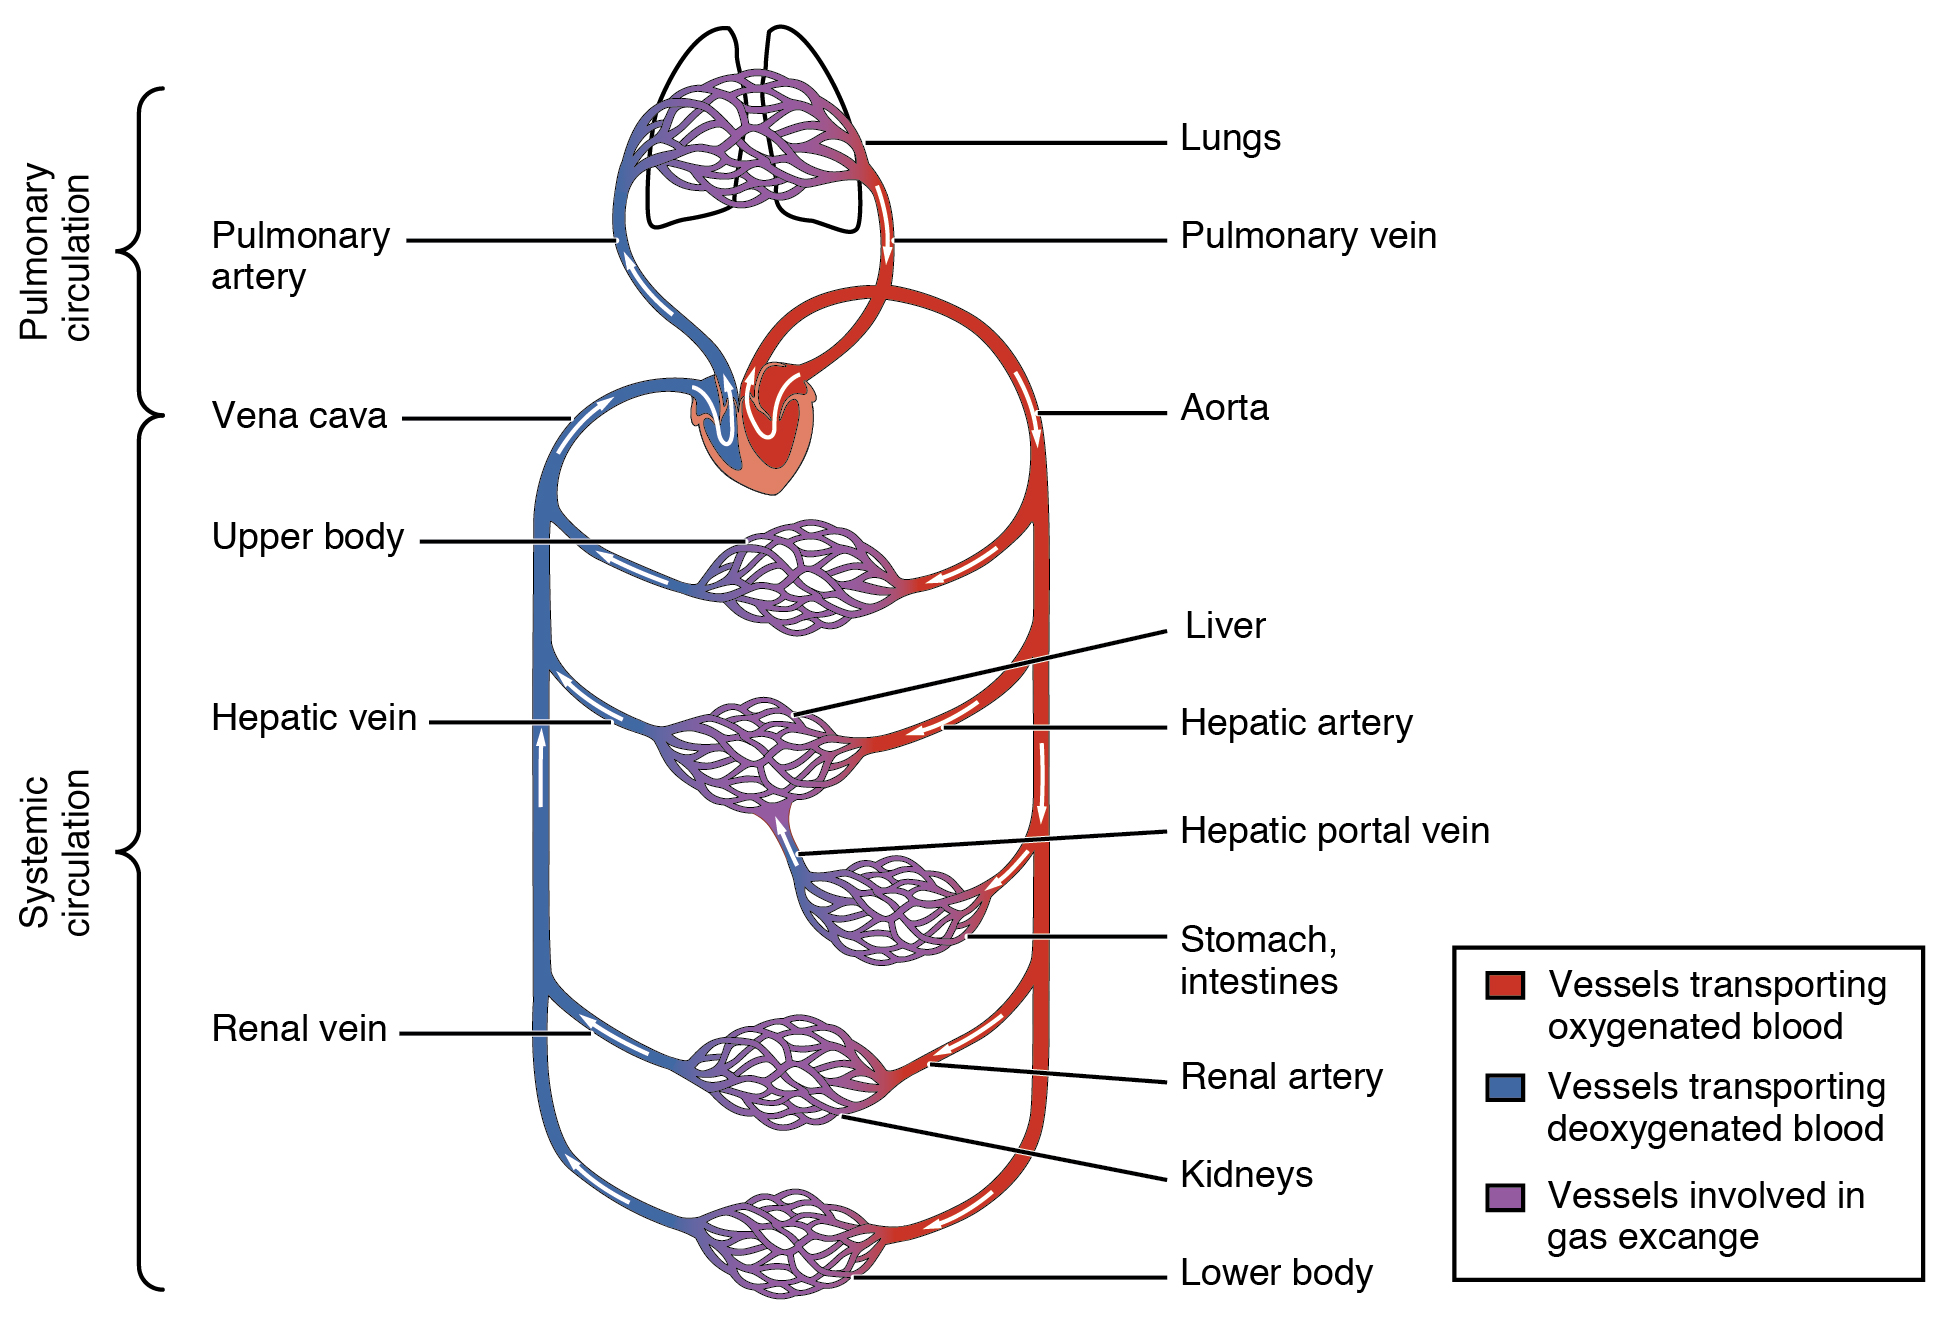 14.2.5 Systemic and Pulmonary Circuits